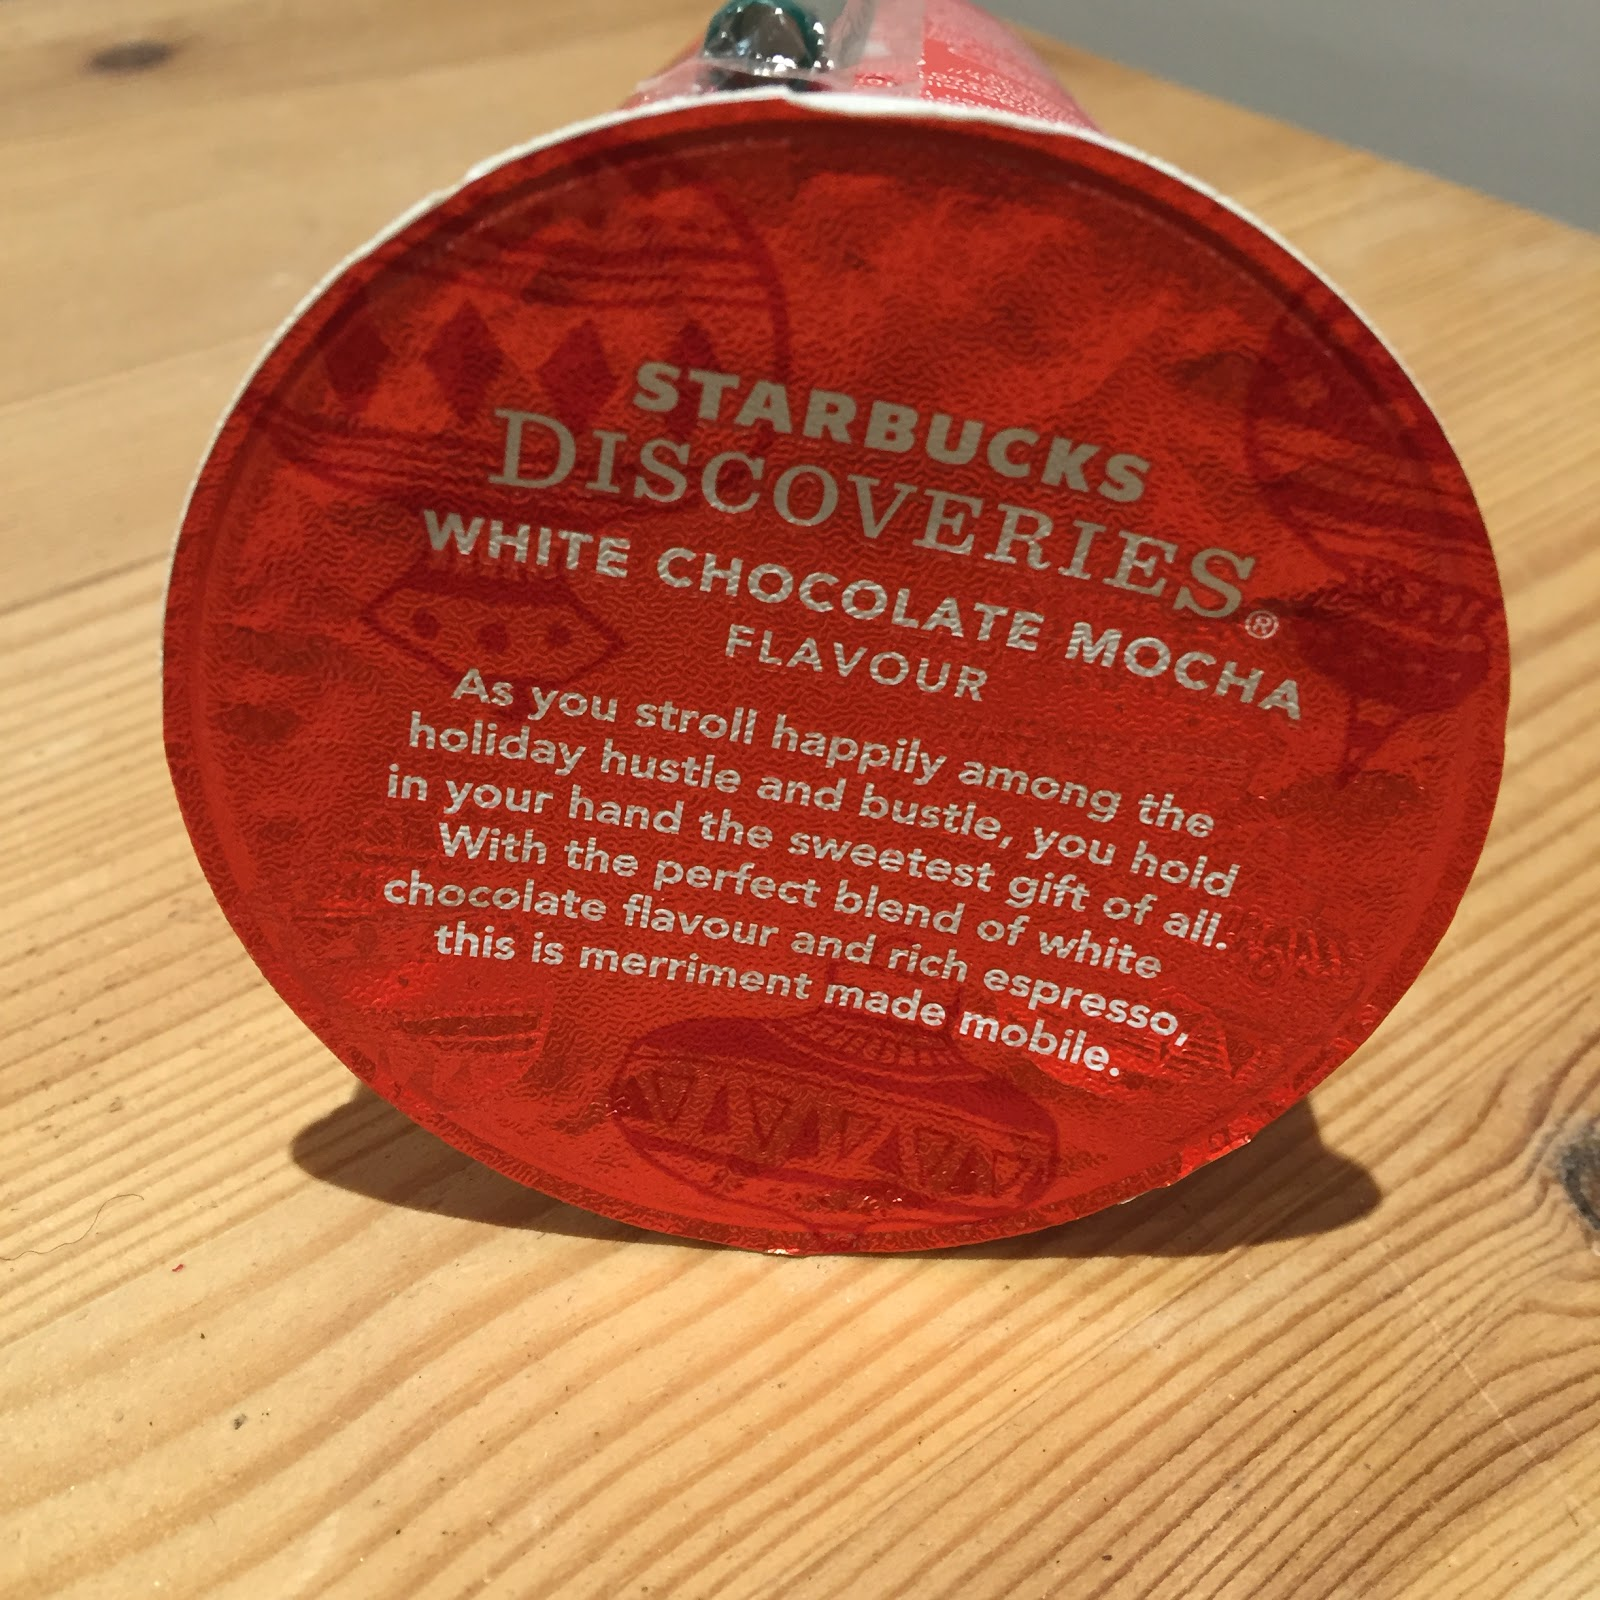 how to make white chocolate mocha like starbucks